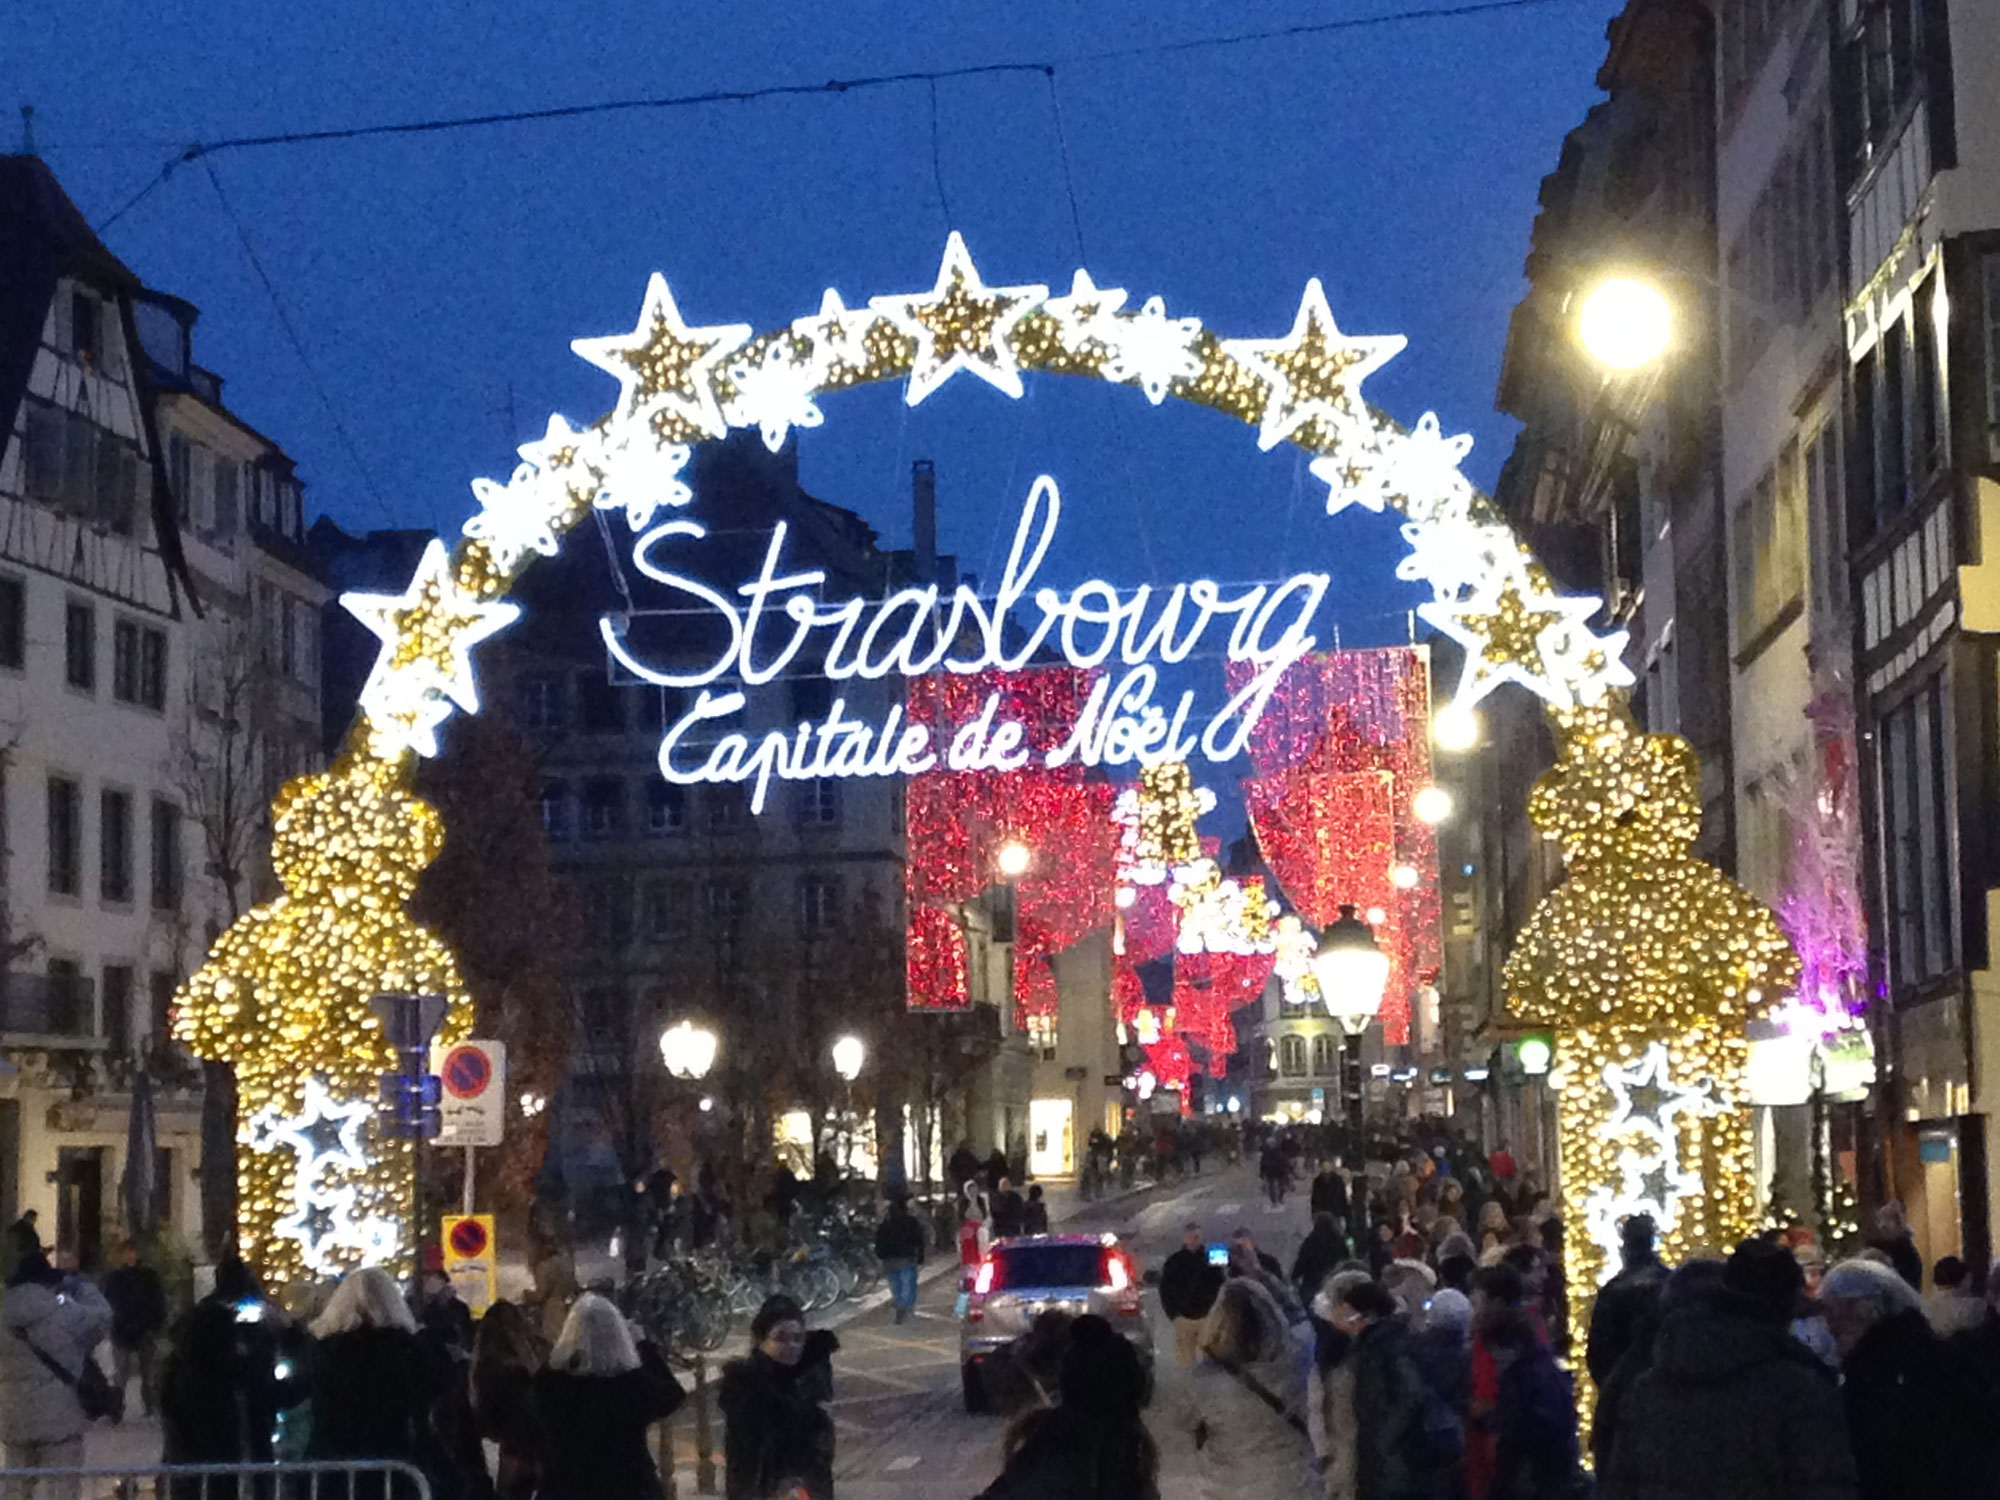 The Christmas market in Strasbourg, France, on Dec, 10, 2015. 680 NEWS/Patricia D'Cunha.